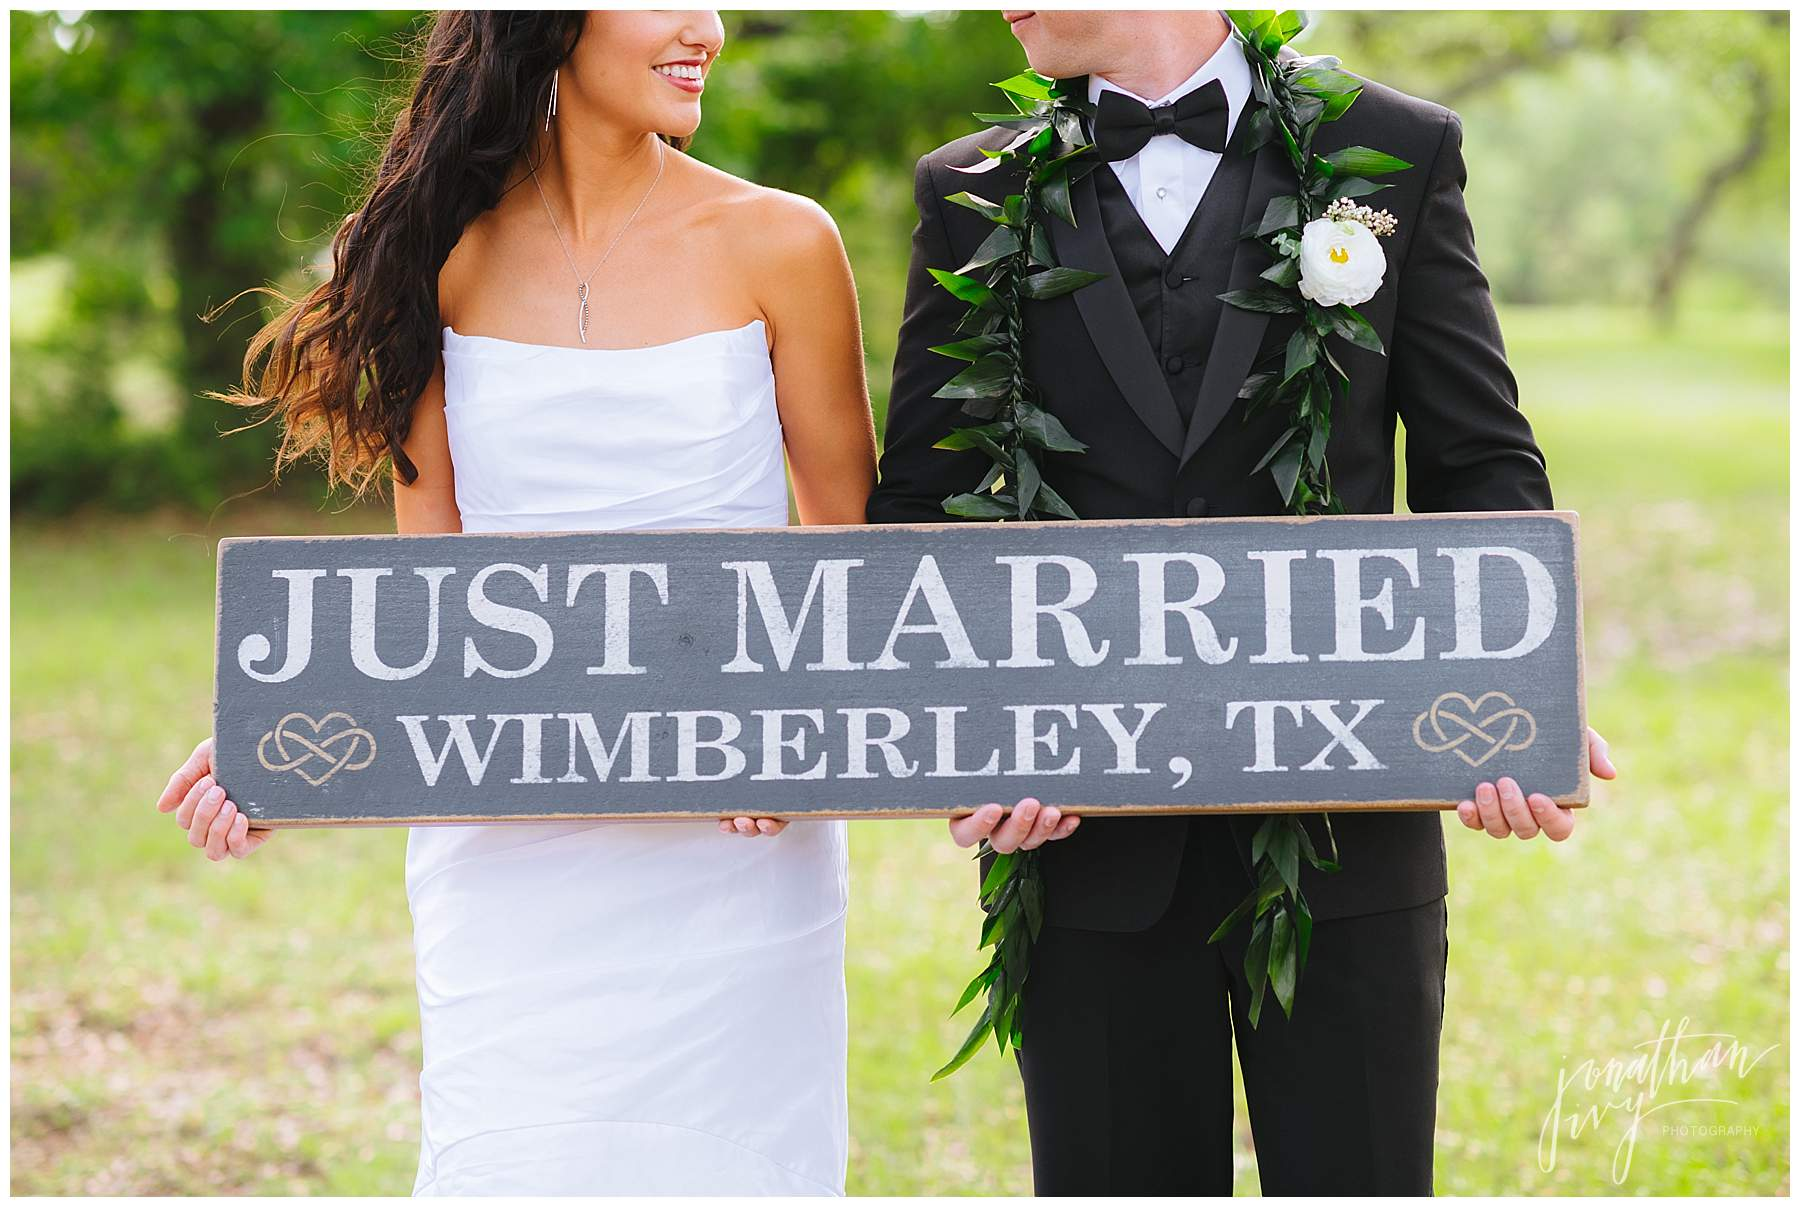 Wimberley Wedding Photographer